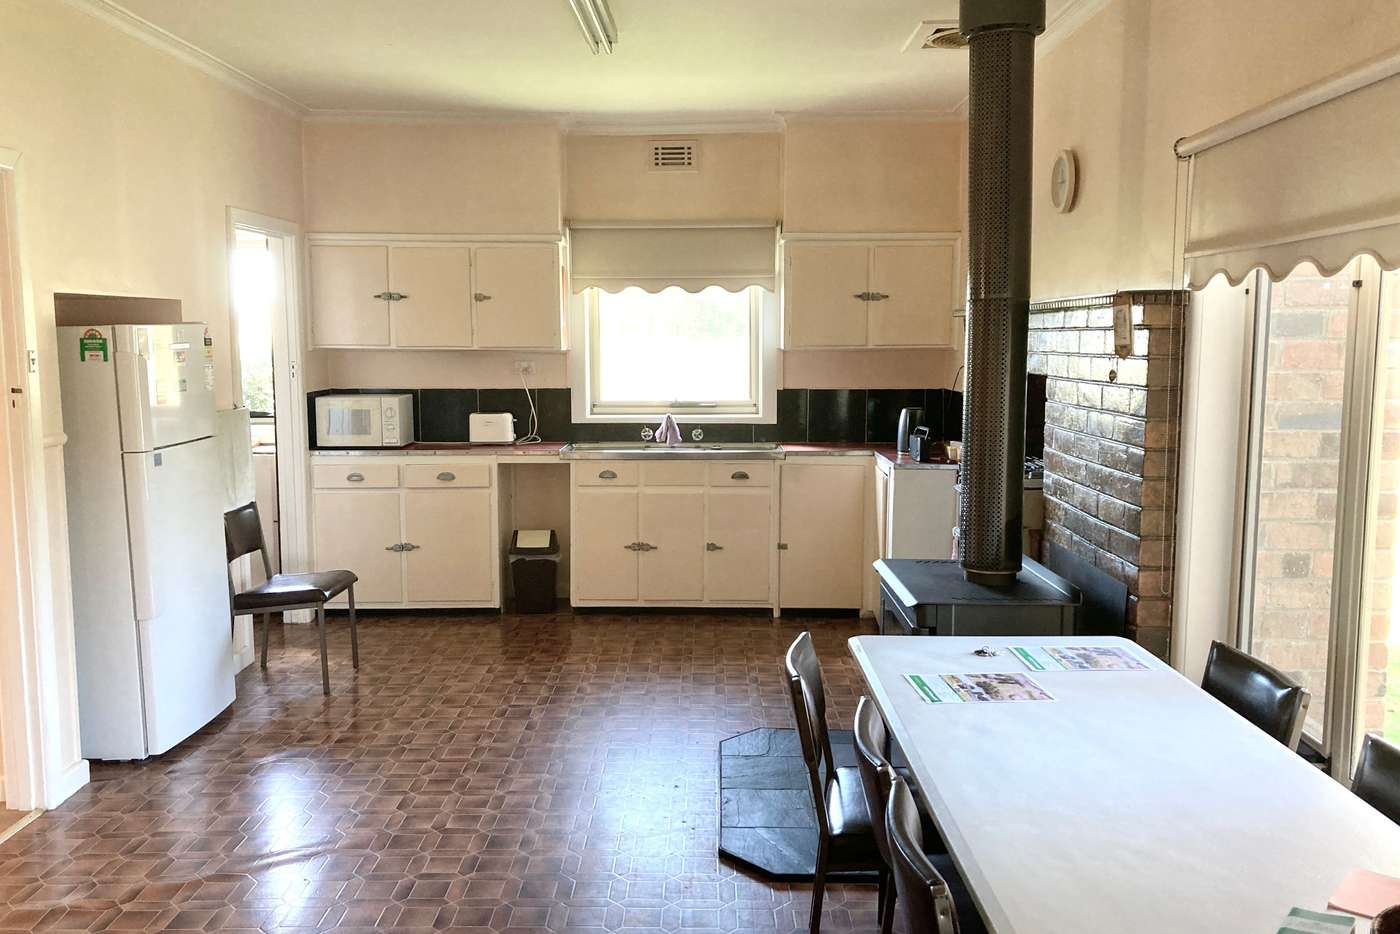 Fifth view of Homely house listing, 670 Old Melbourne Road, Ballan VIC 3342